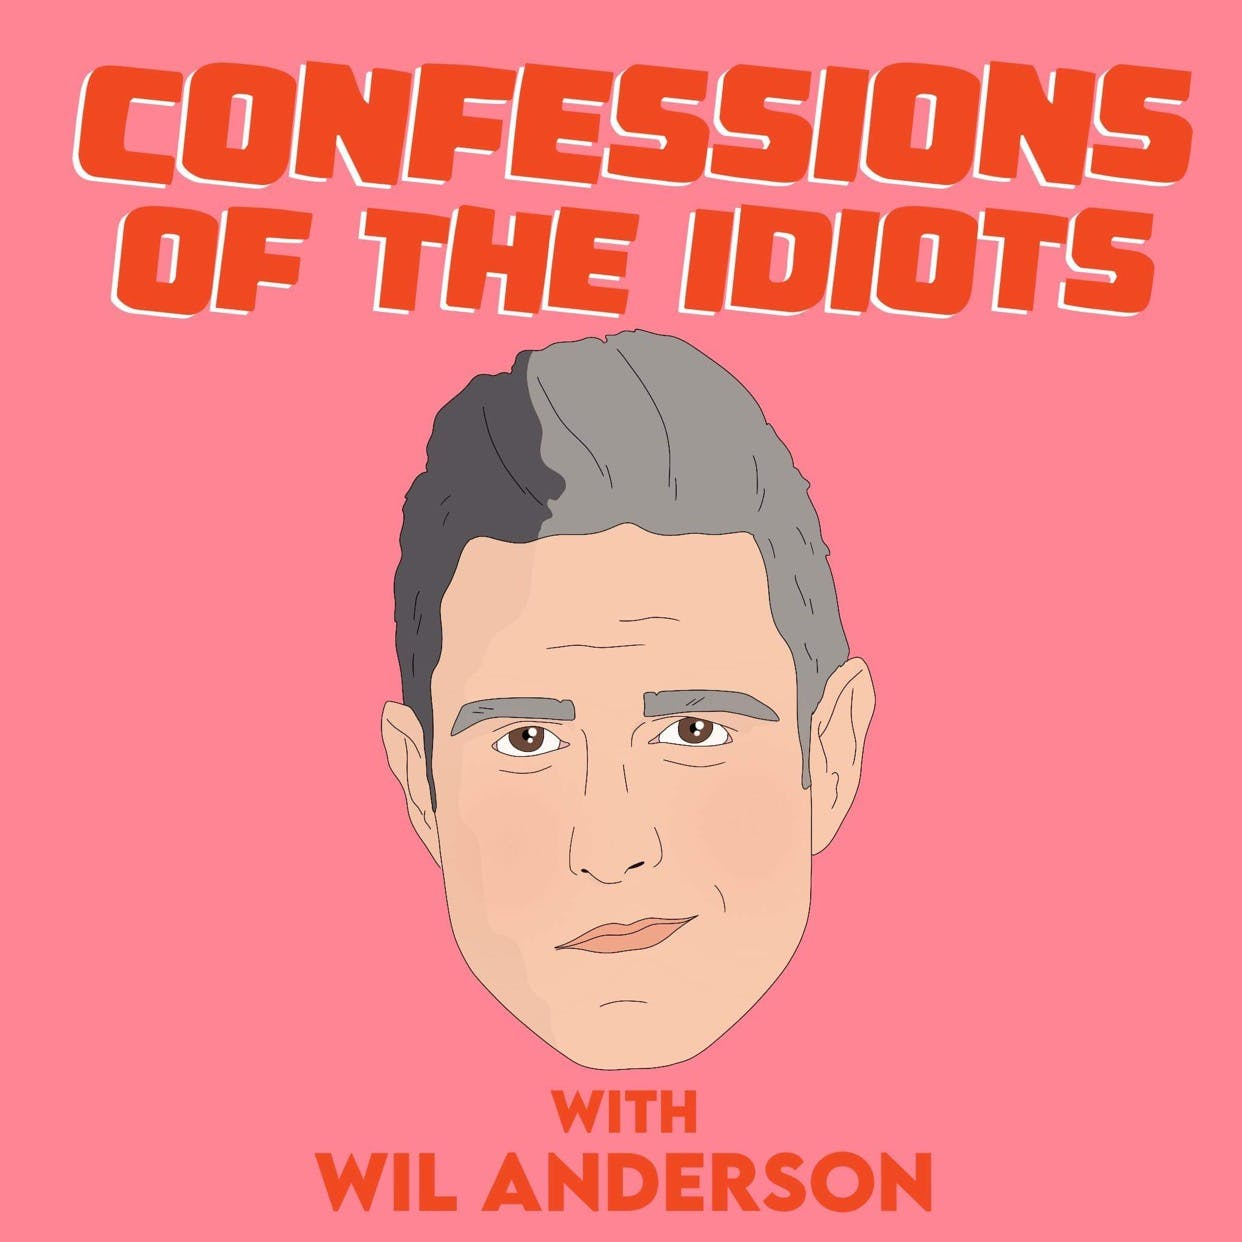 Wil Anderson RETURNS